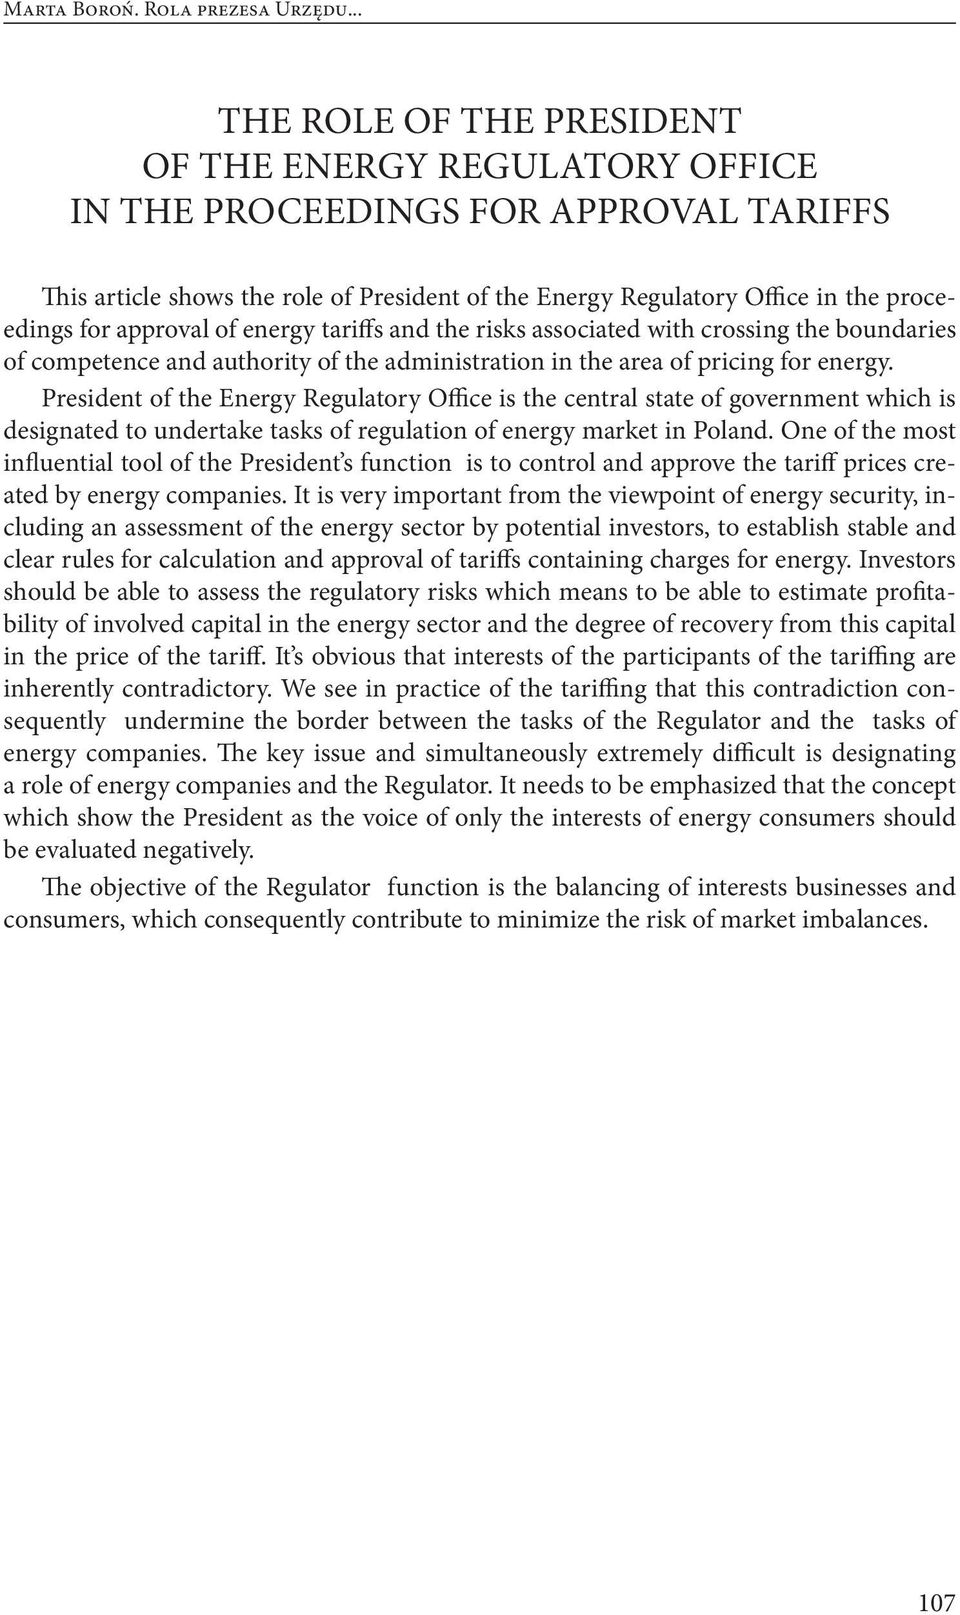 approval of energy tariffs and the risks associated with crossing the boundaries of competence and authority of the administration in the area of pricing for energy.